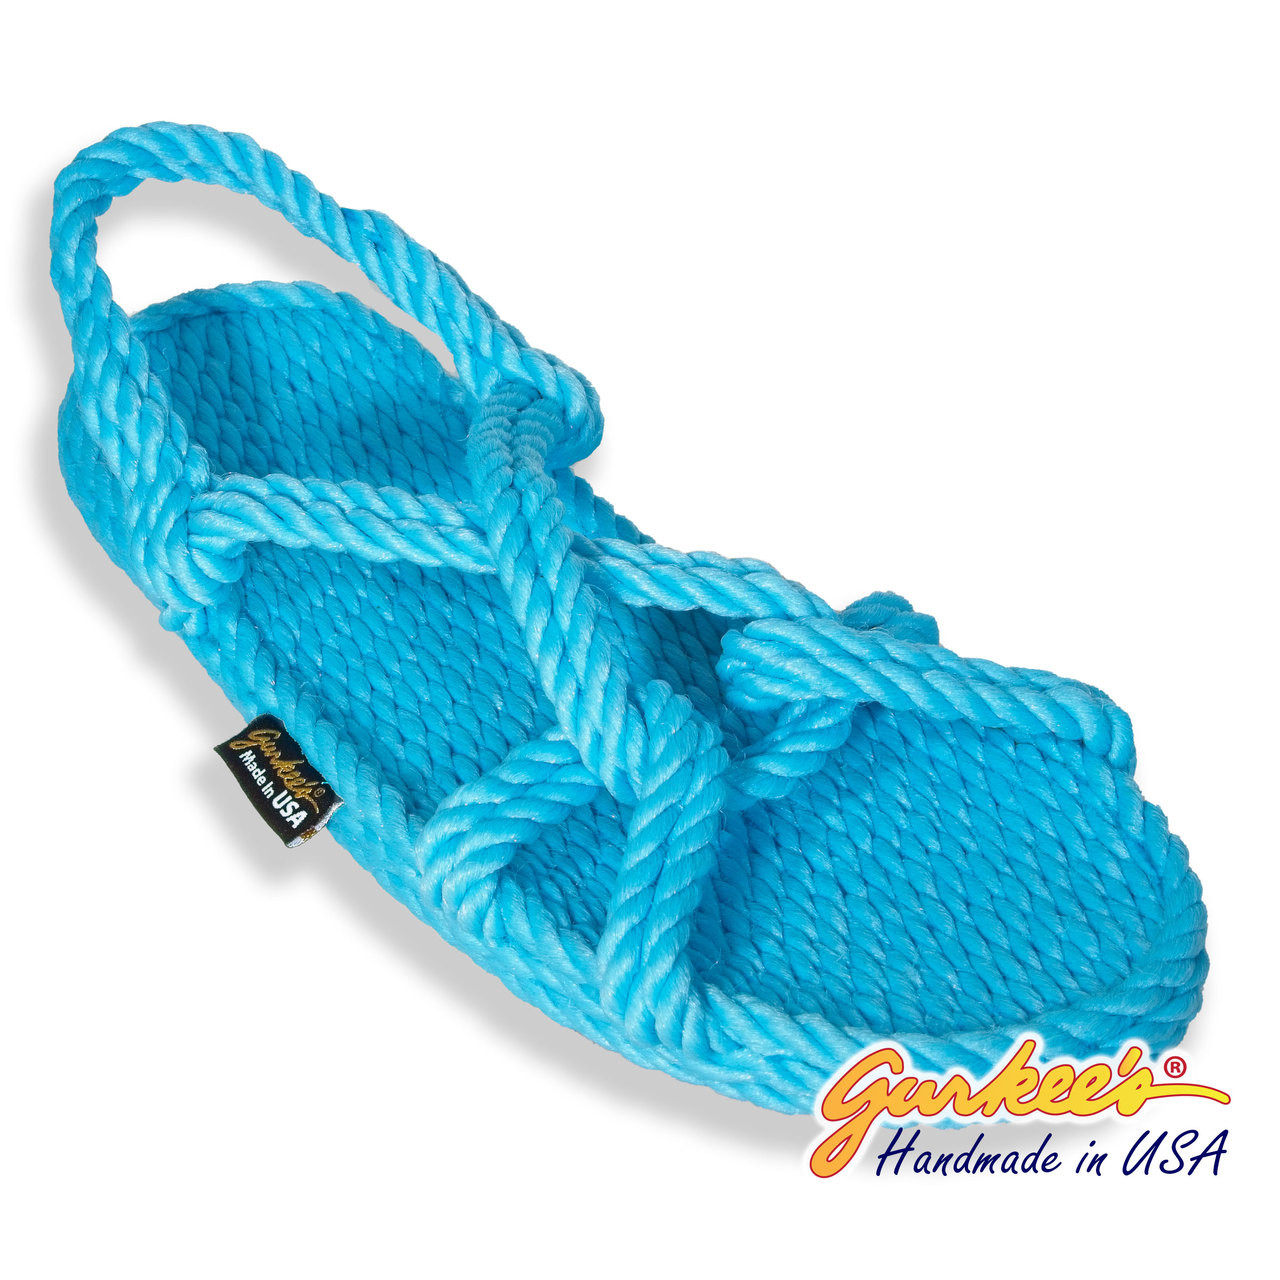 5c0e7ee62261 ... Classic Barbados Cotton Candy Color Rope Sandals. Loading zoom